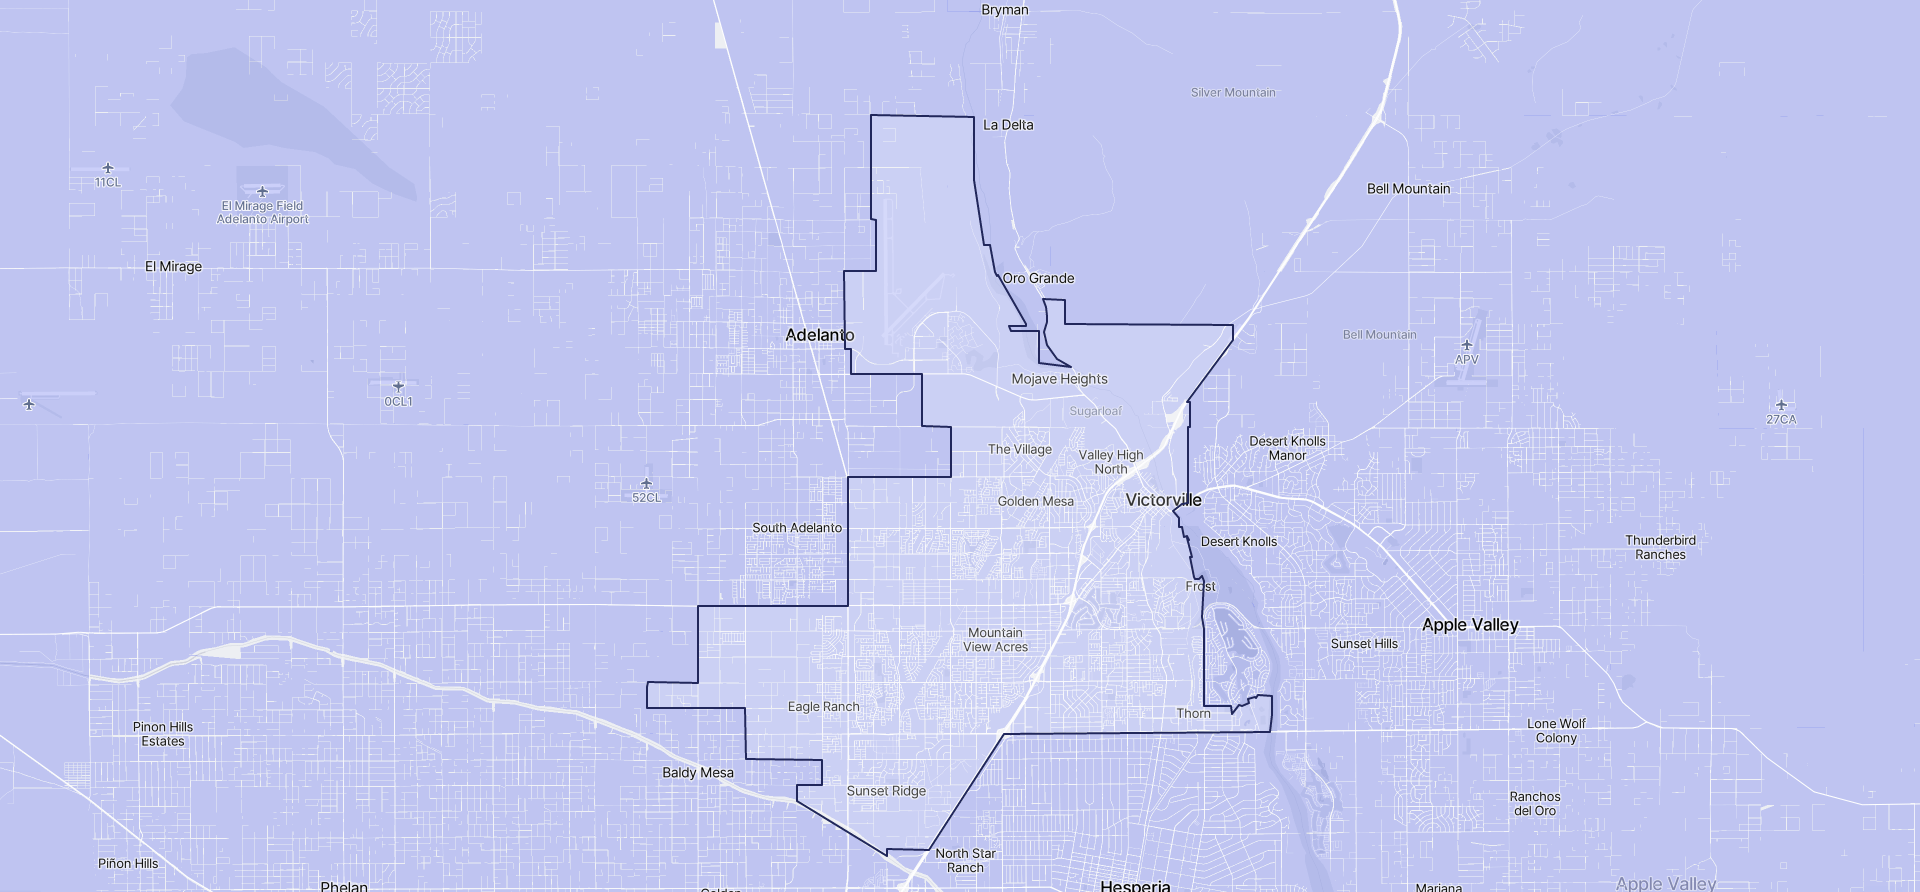 Image of Victorville boundaries on a map.